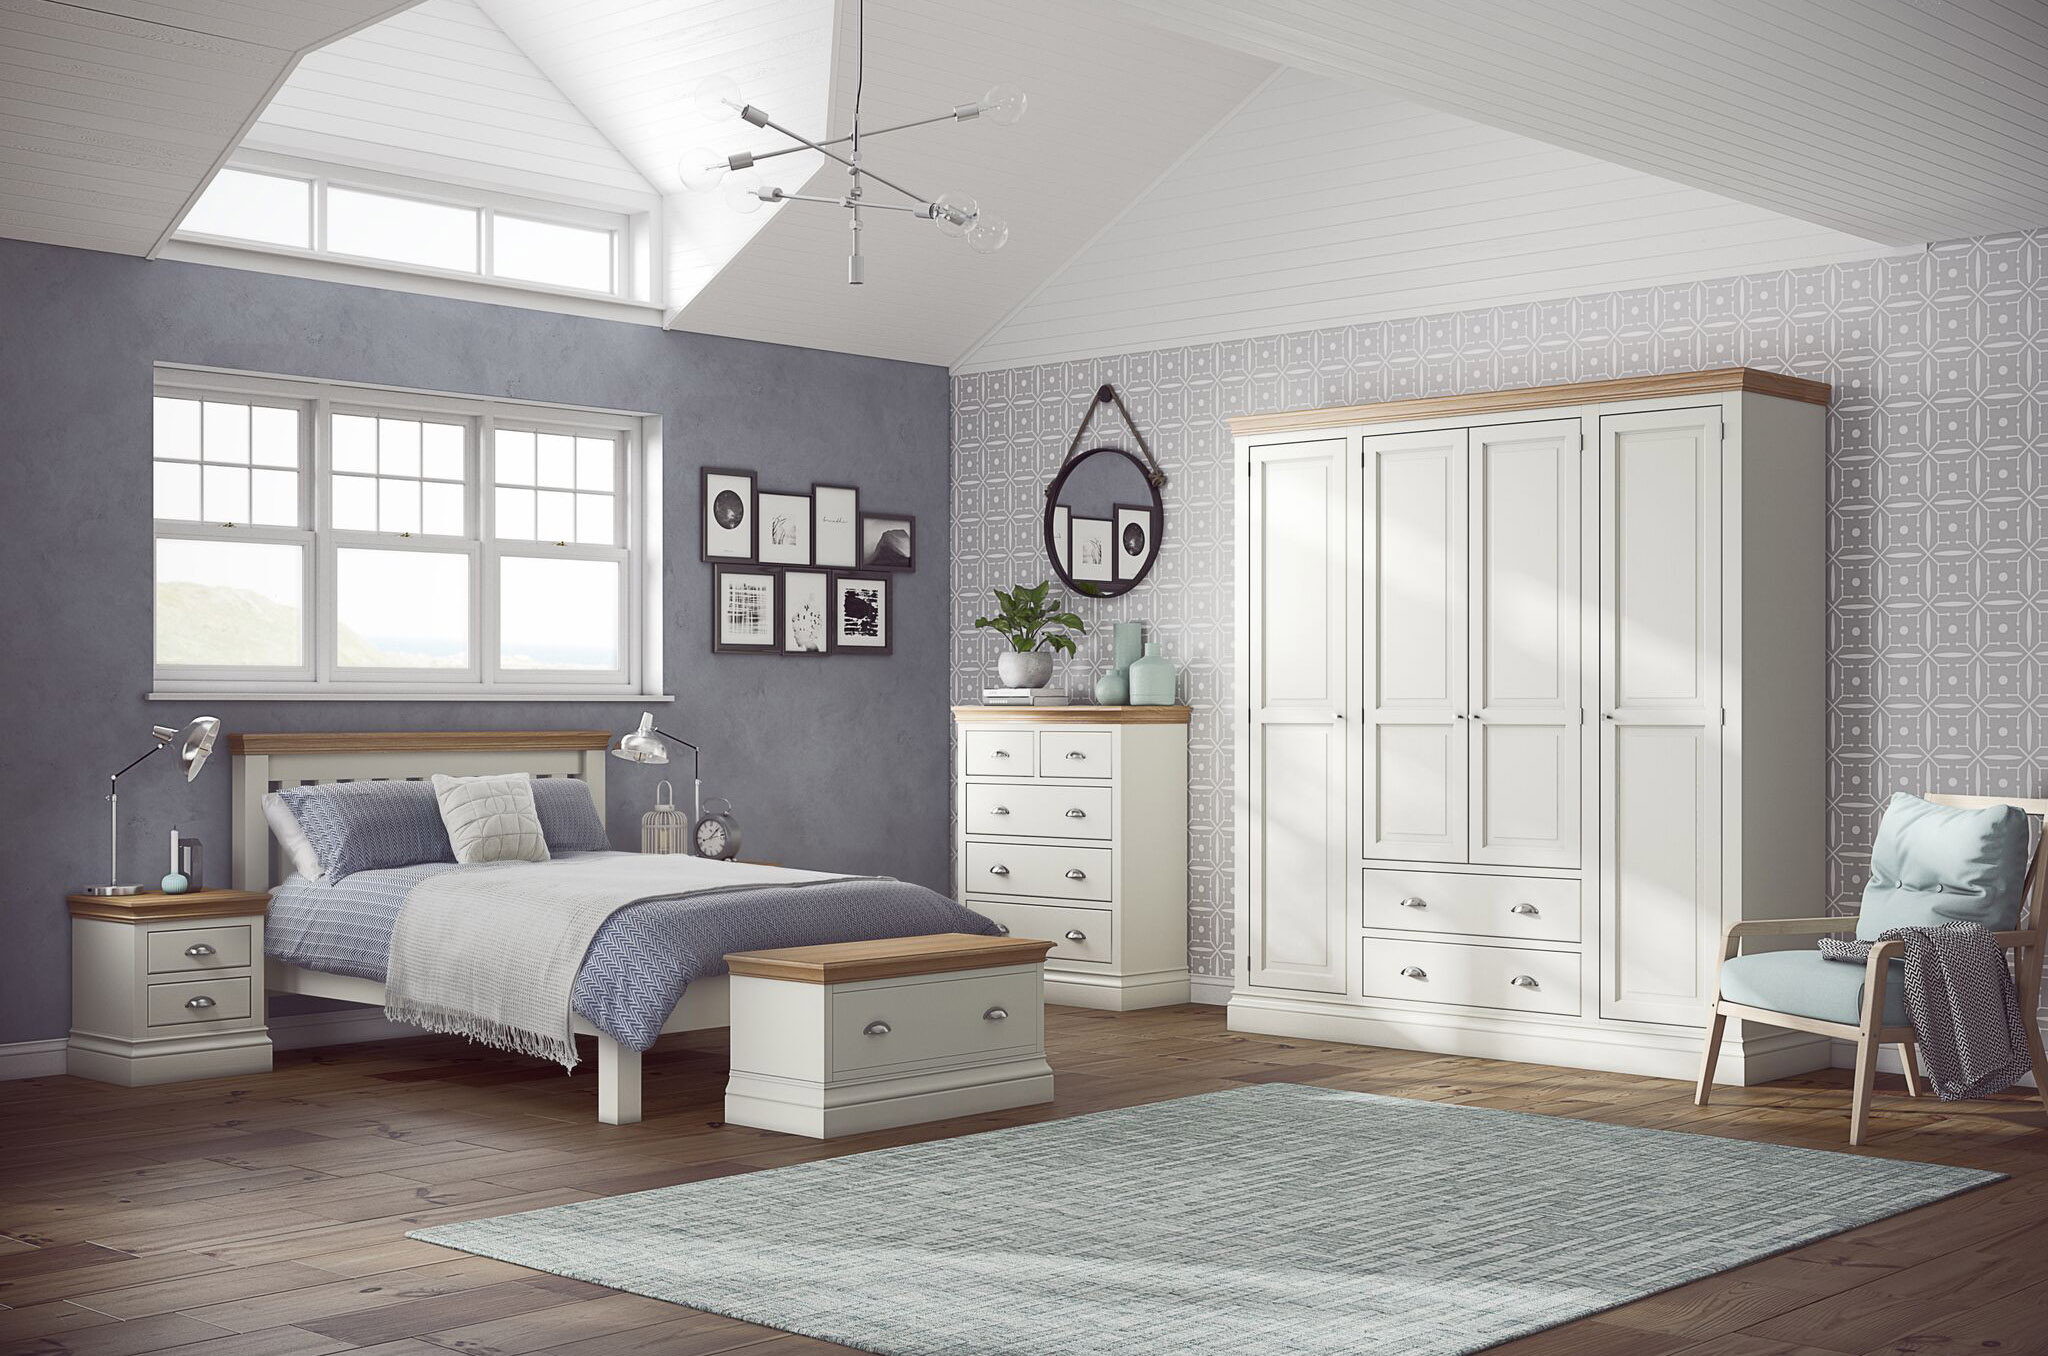 New Style Bedroom Furniture. Lundy Painted New Style Bedroom Furniture S